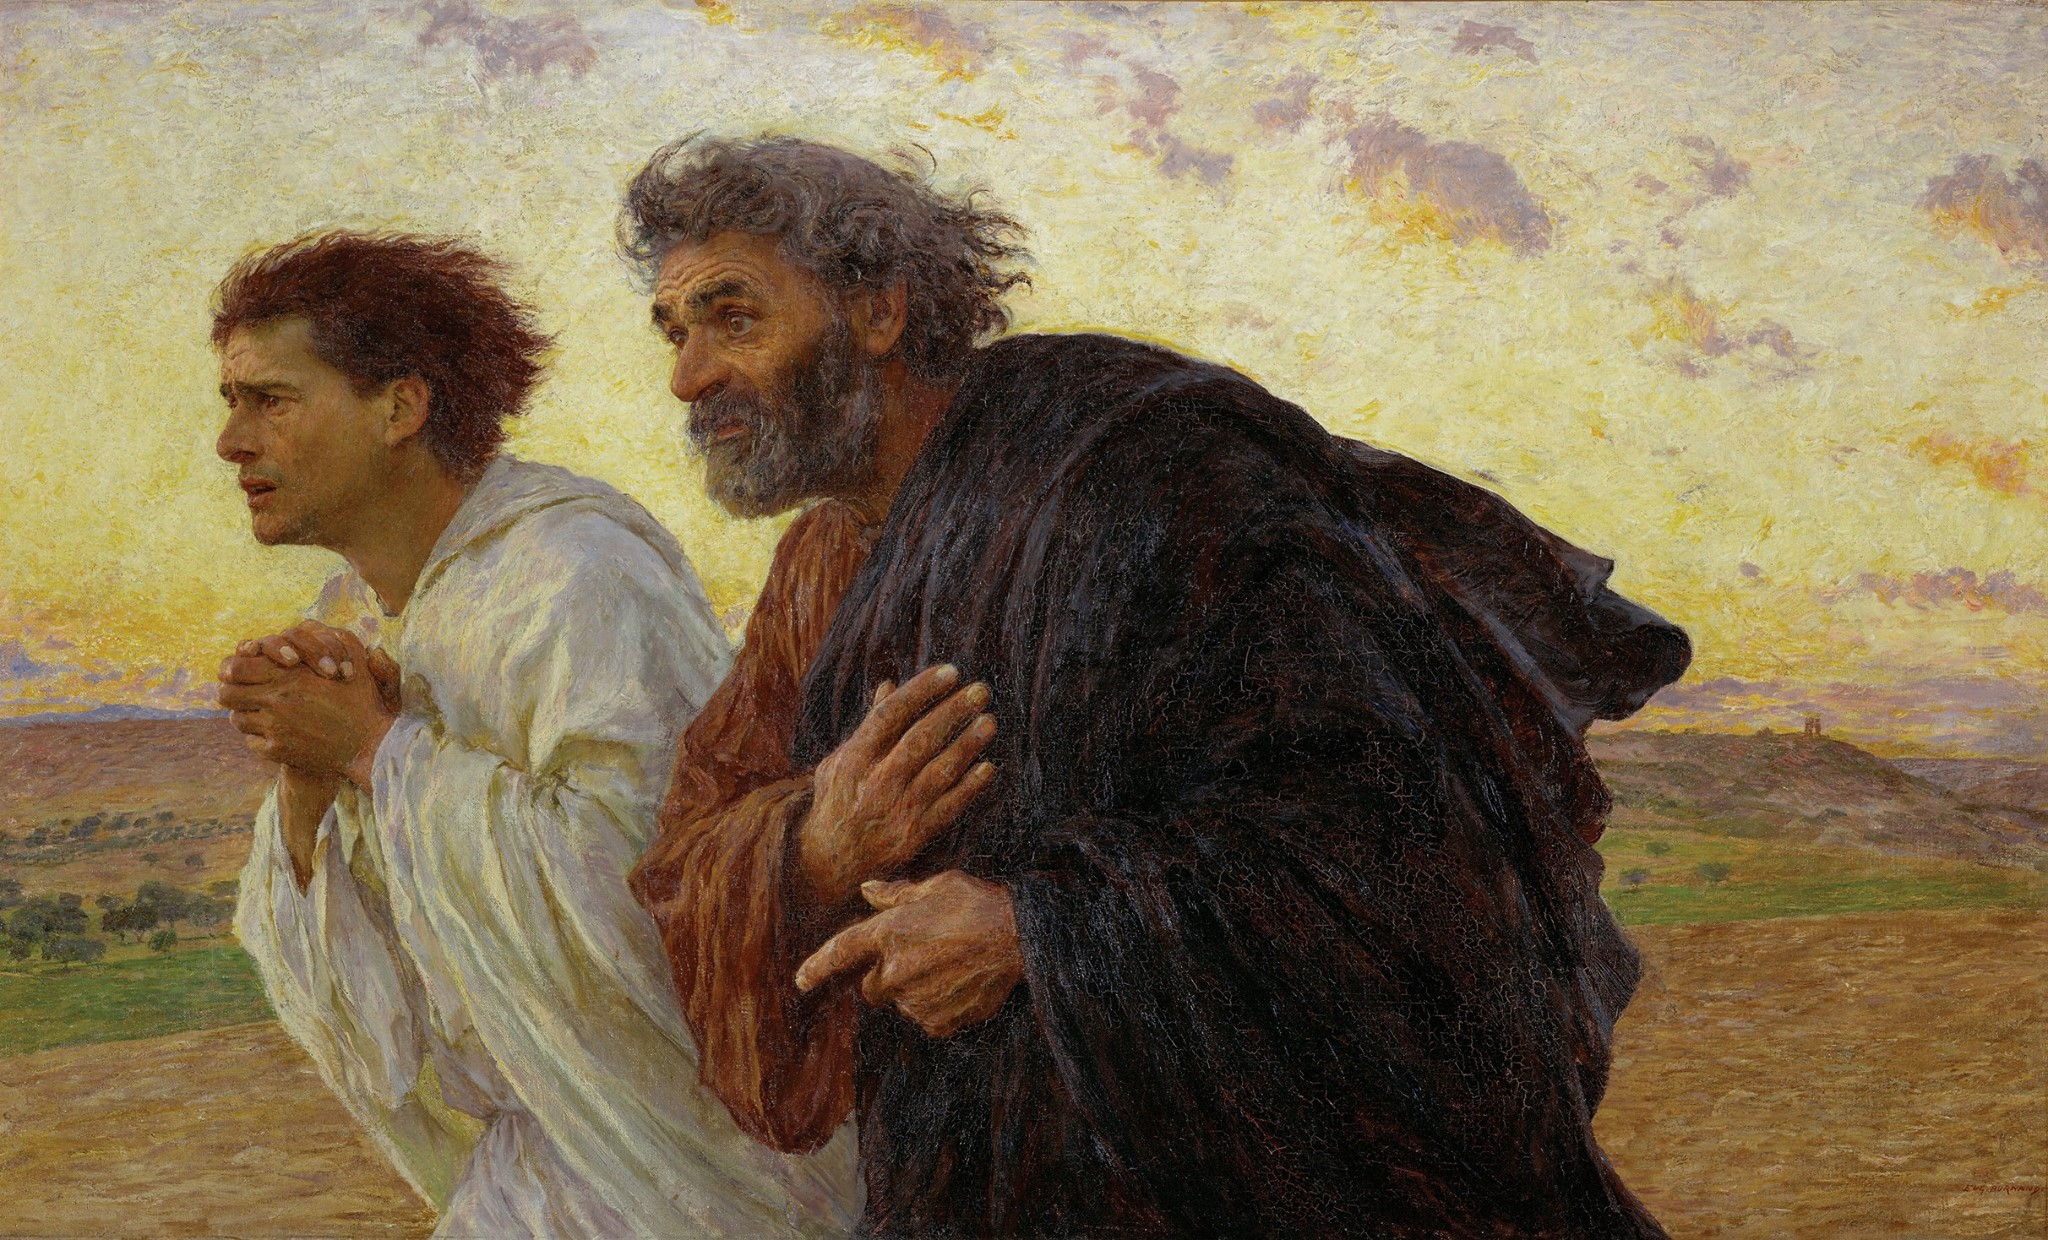 """""""The Disciples Peter and John Running to the Sepulchre on the Morning of the Resurrection"""" by Eugene Burnand (1898)"""